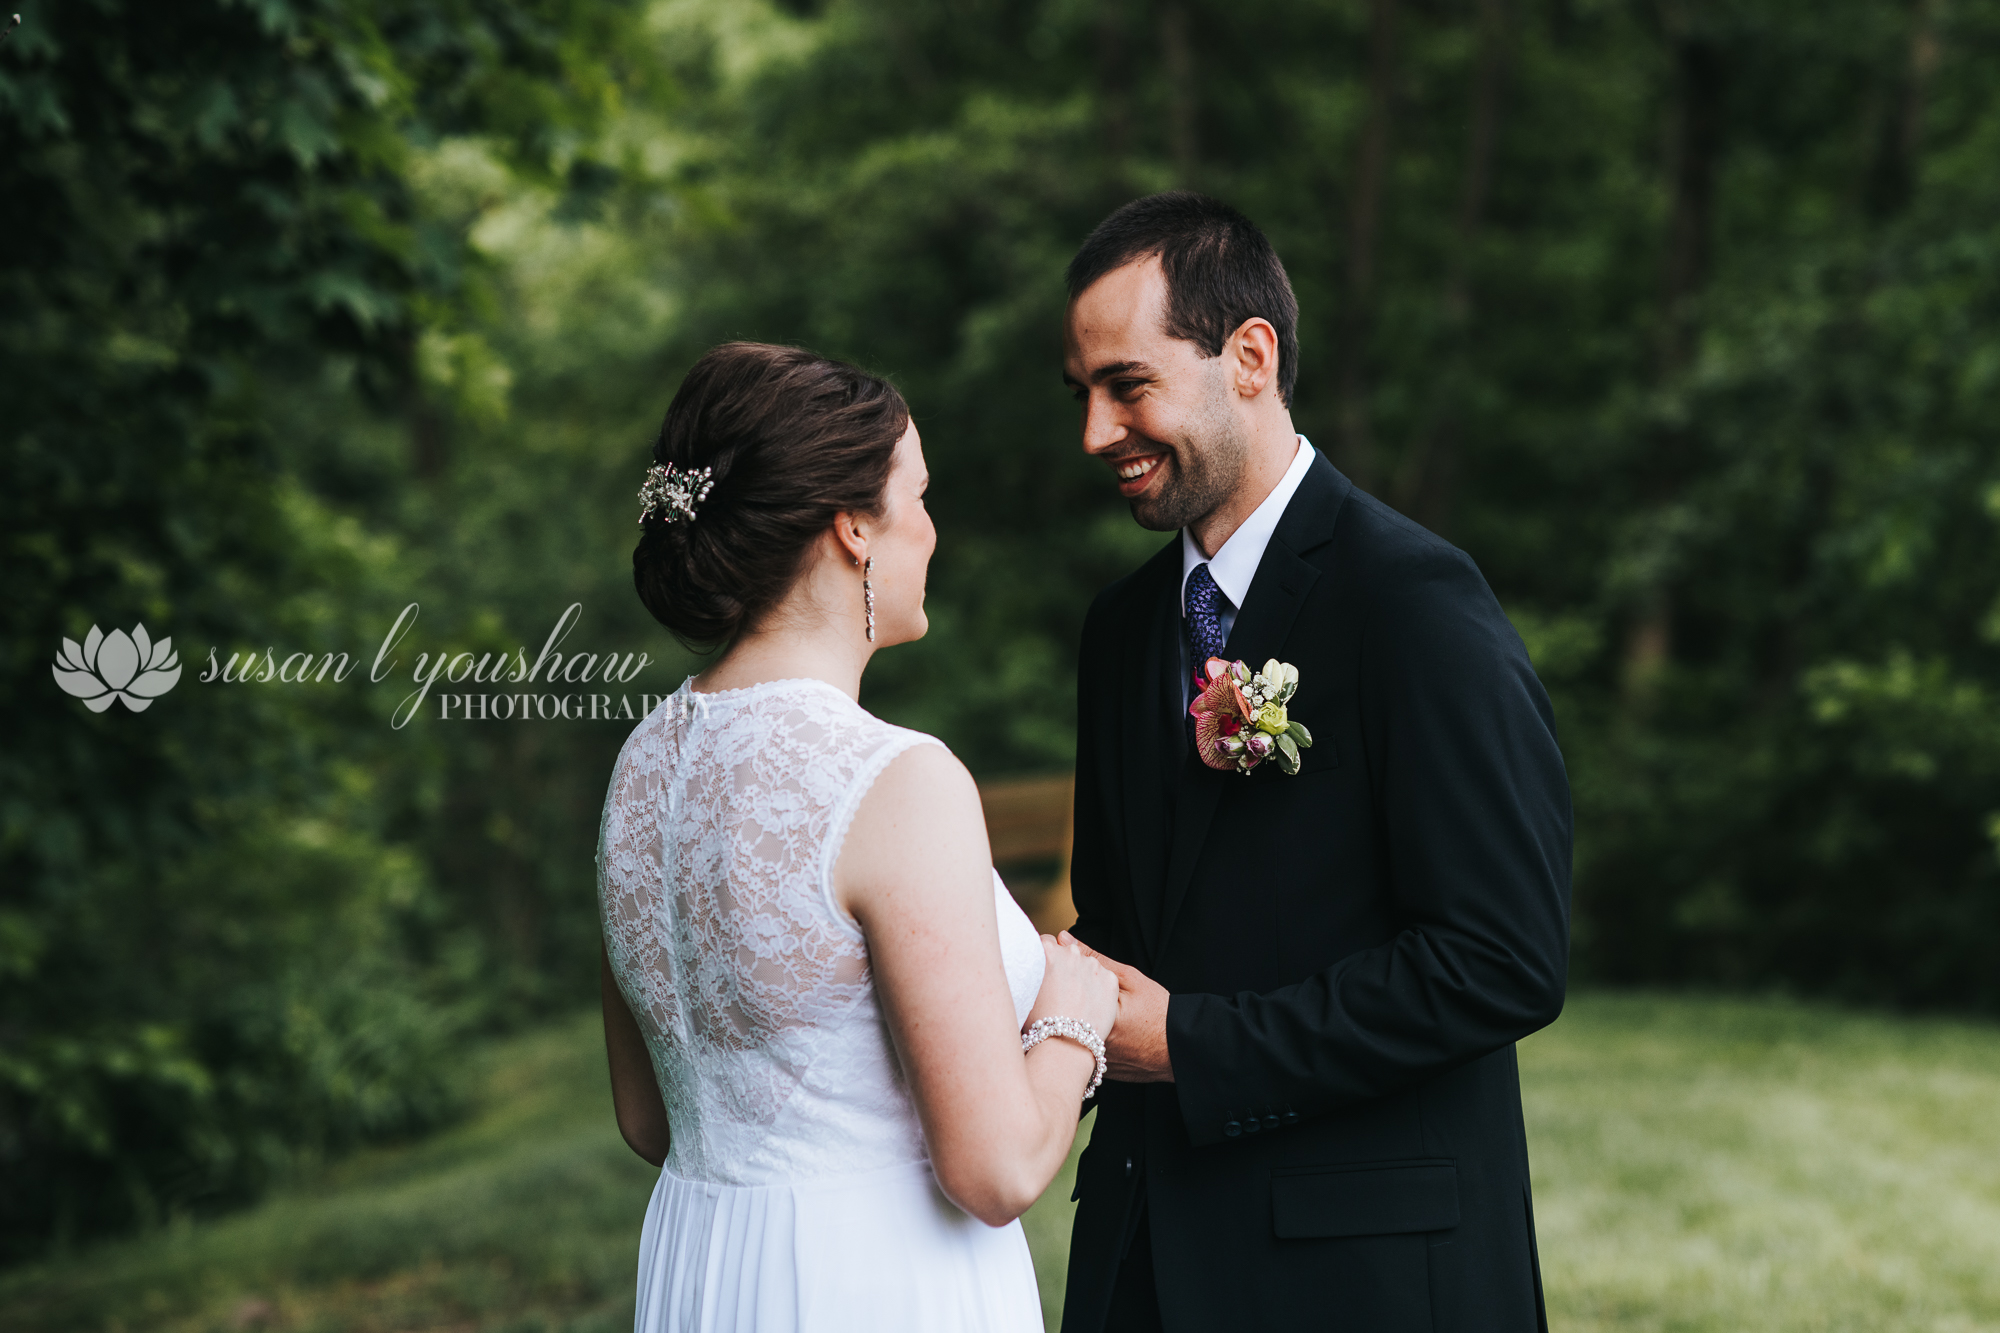 Adena and  Erik Wedding 05-17-2019 SLY Photography-26.jpg